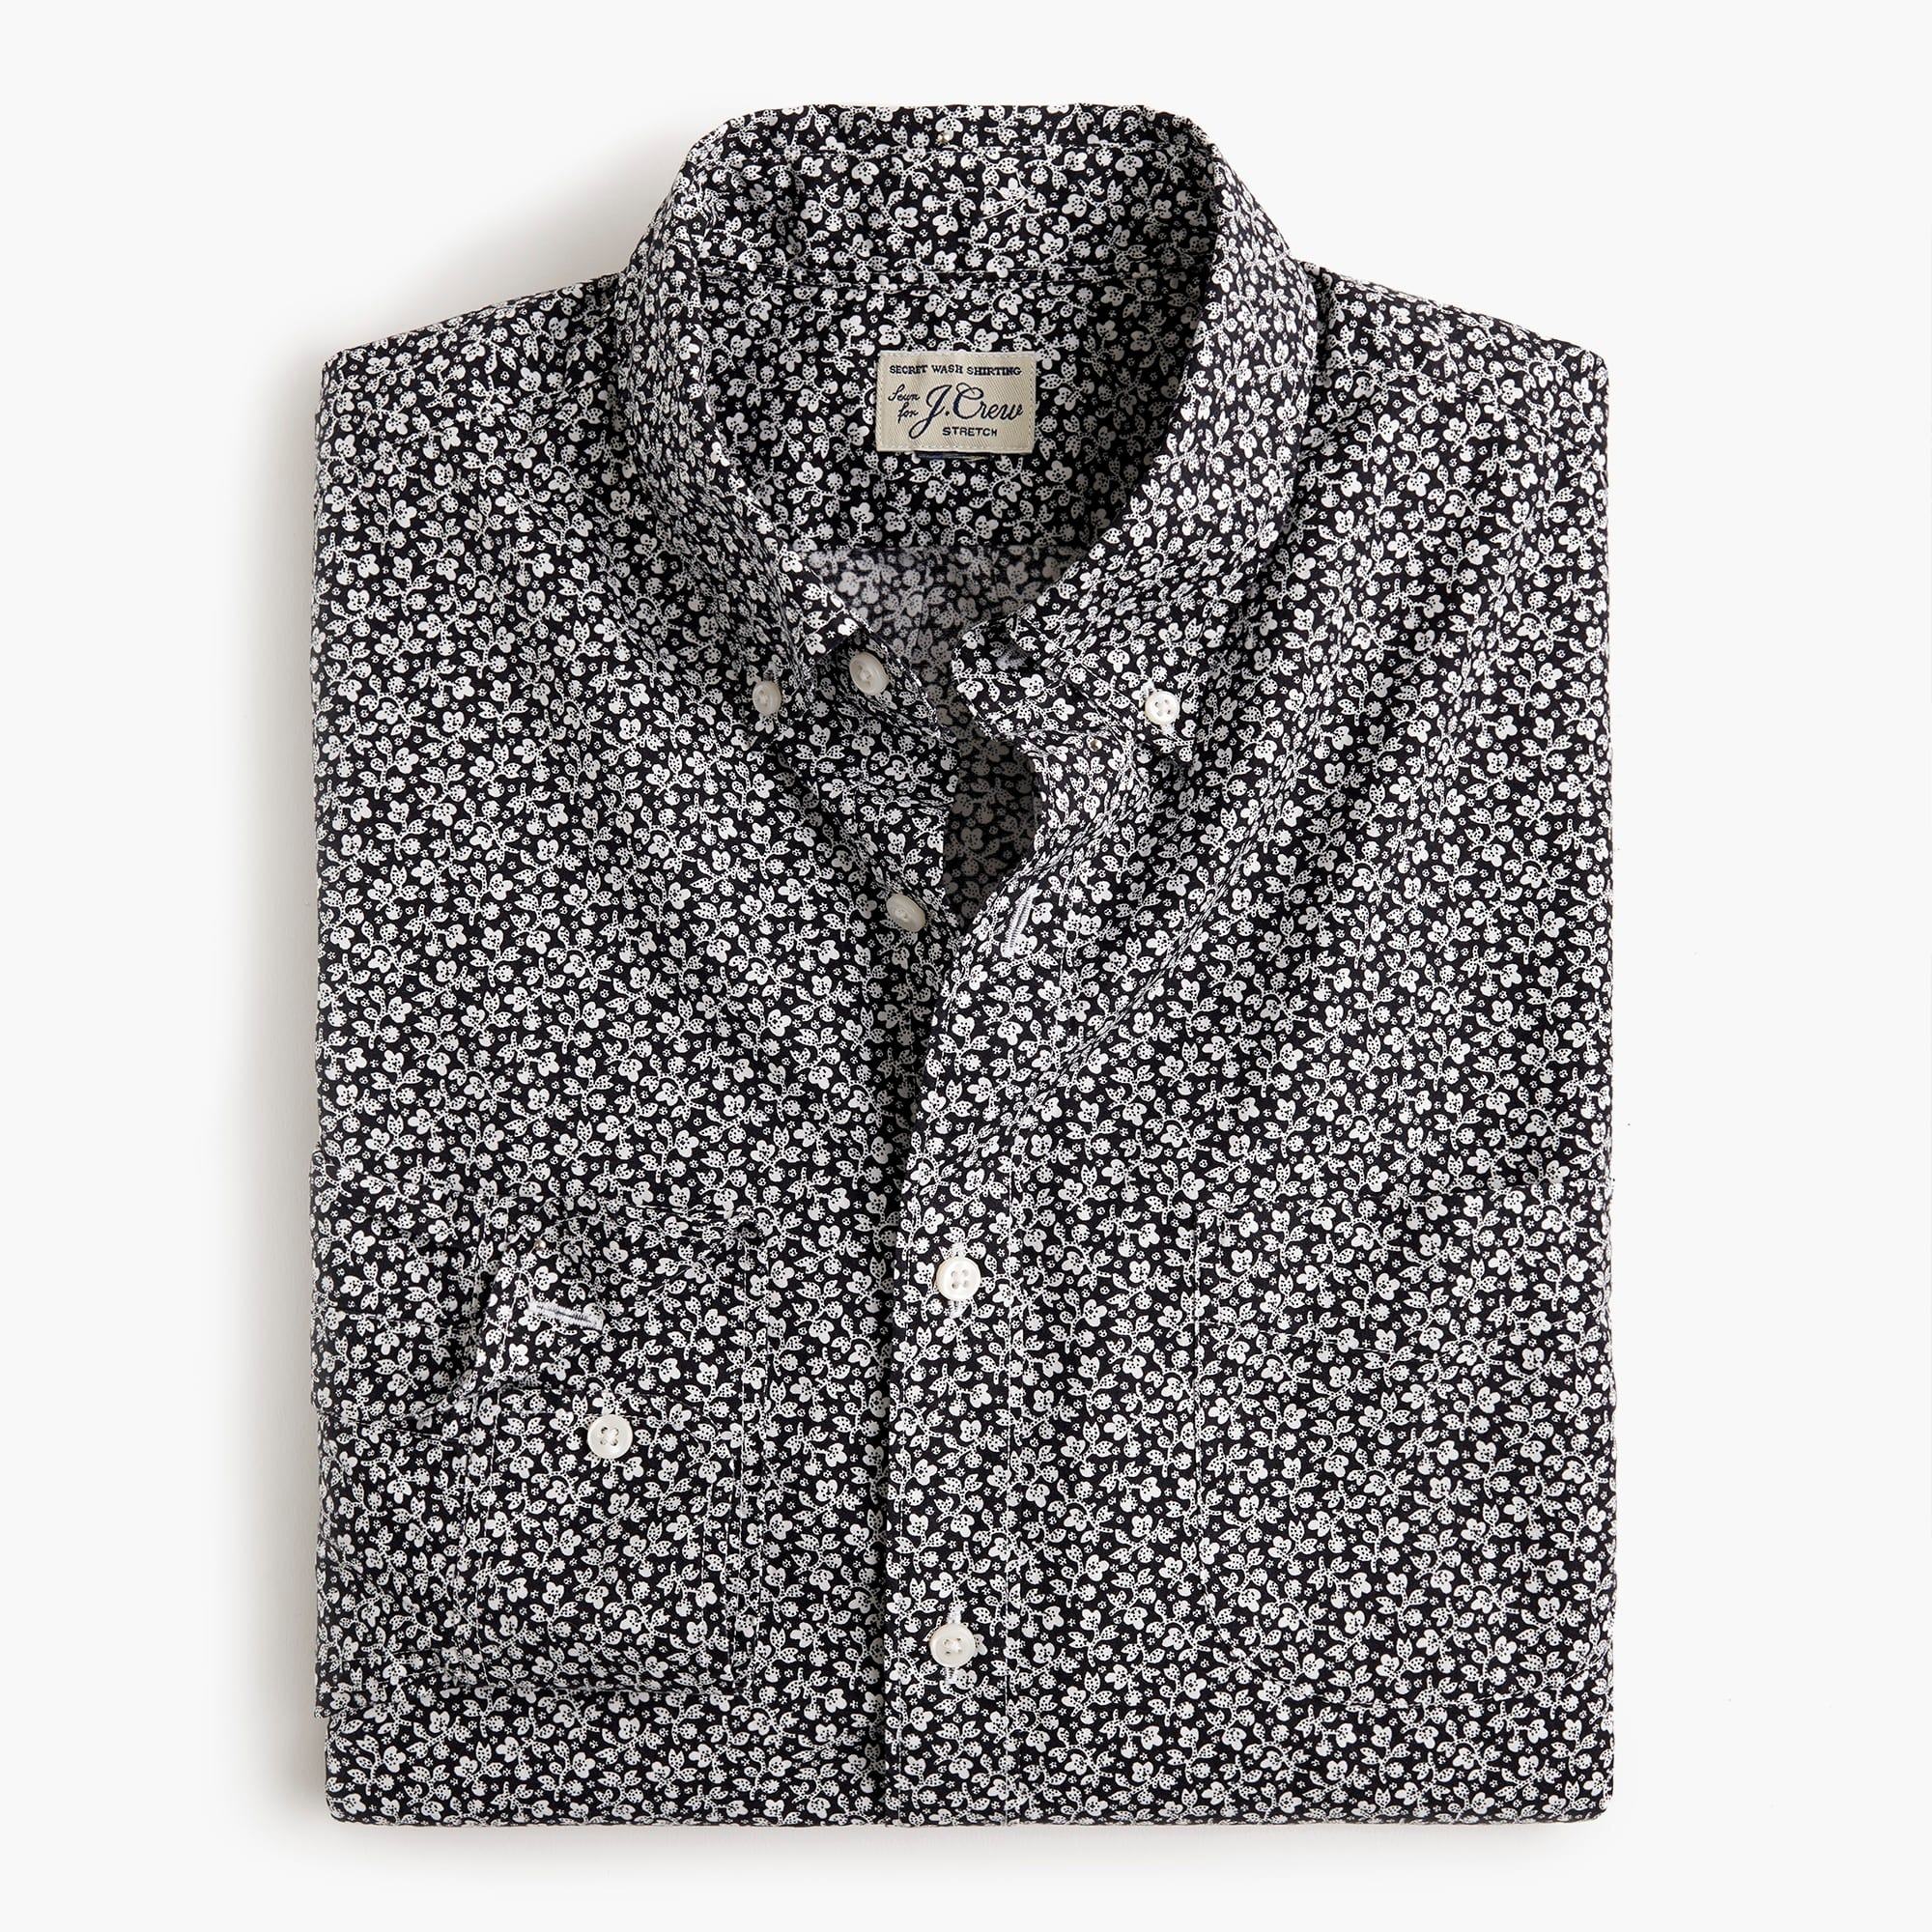 Classic Stretch Secret Wash shirt in black-and-white floral